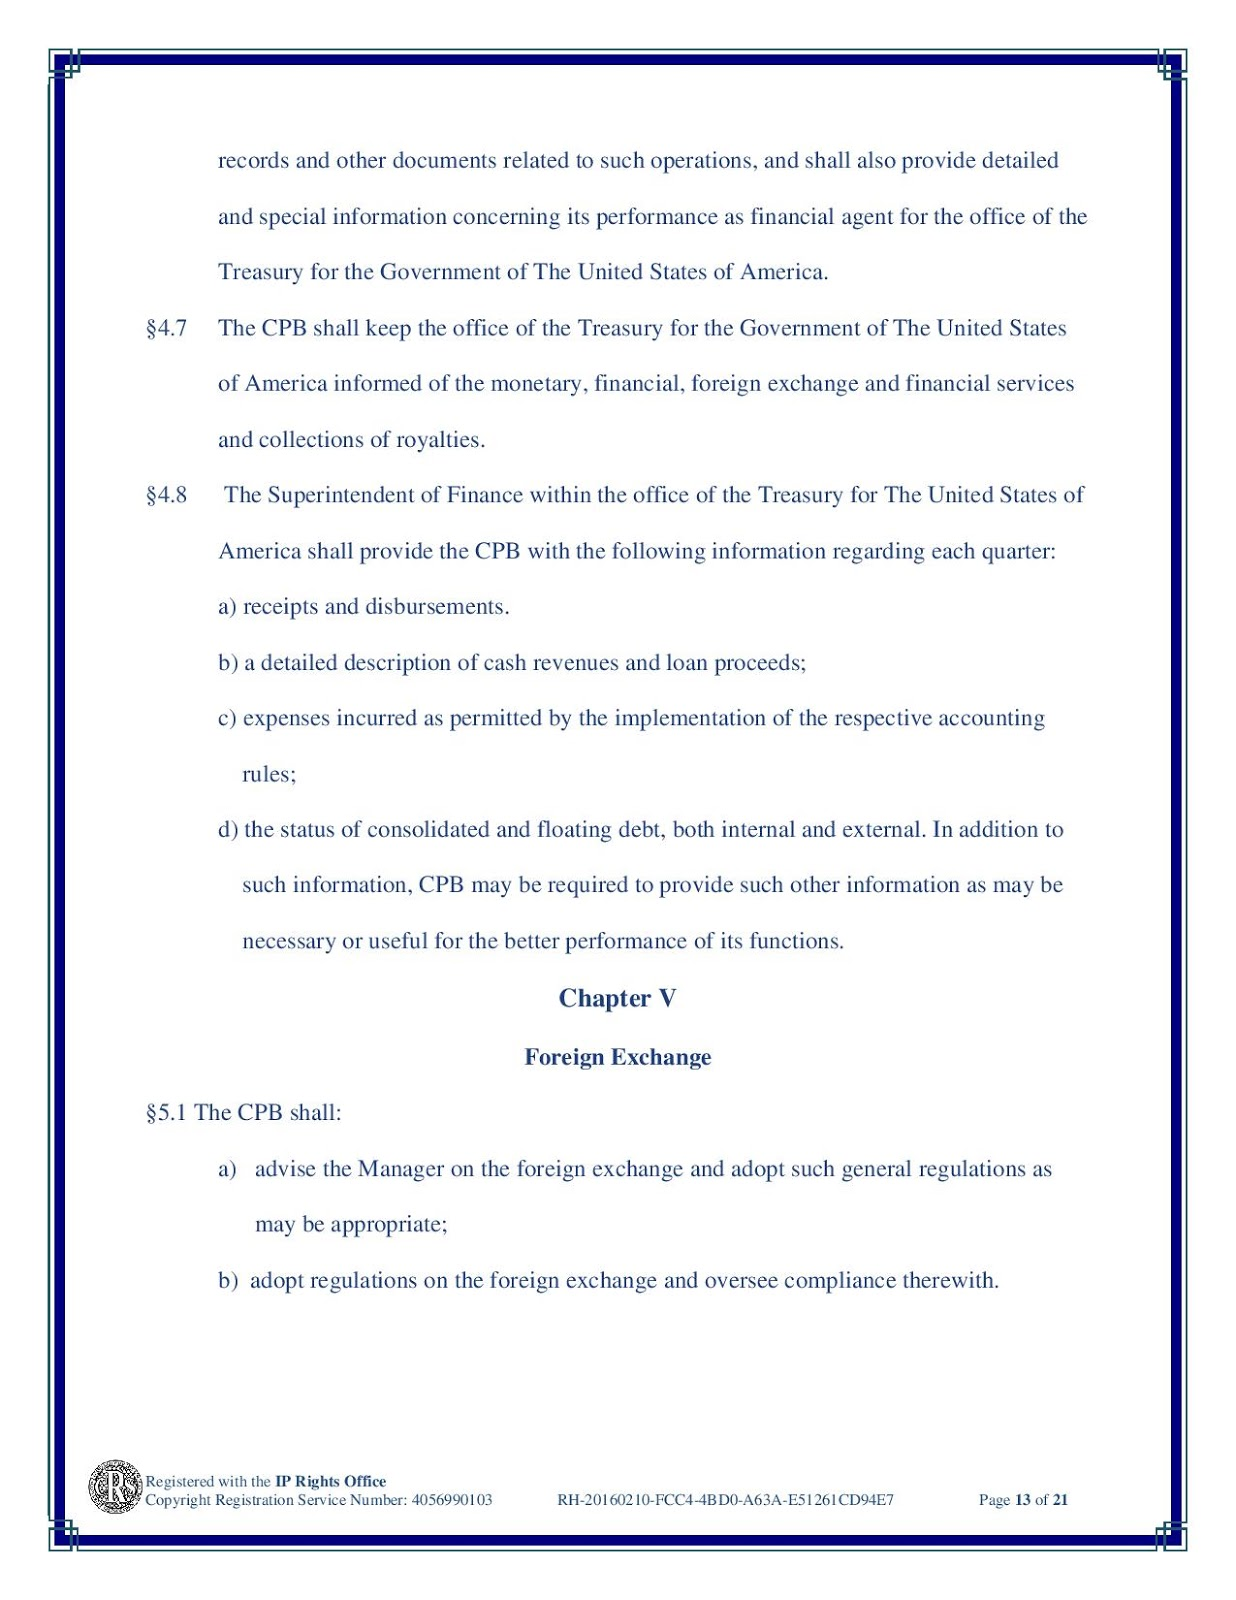 The United States, In Congress Assembled: PROCLAMATION OF DISSOLUTION OF THE BANK OF NORTH AMERICA. 20160210-GPOD3-CPB_CHARTER-page-013